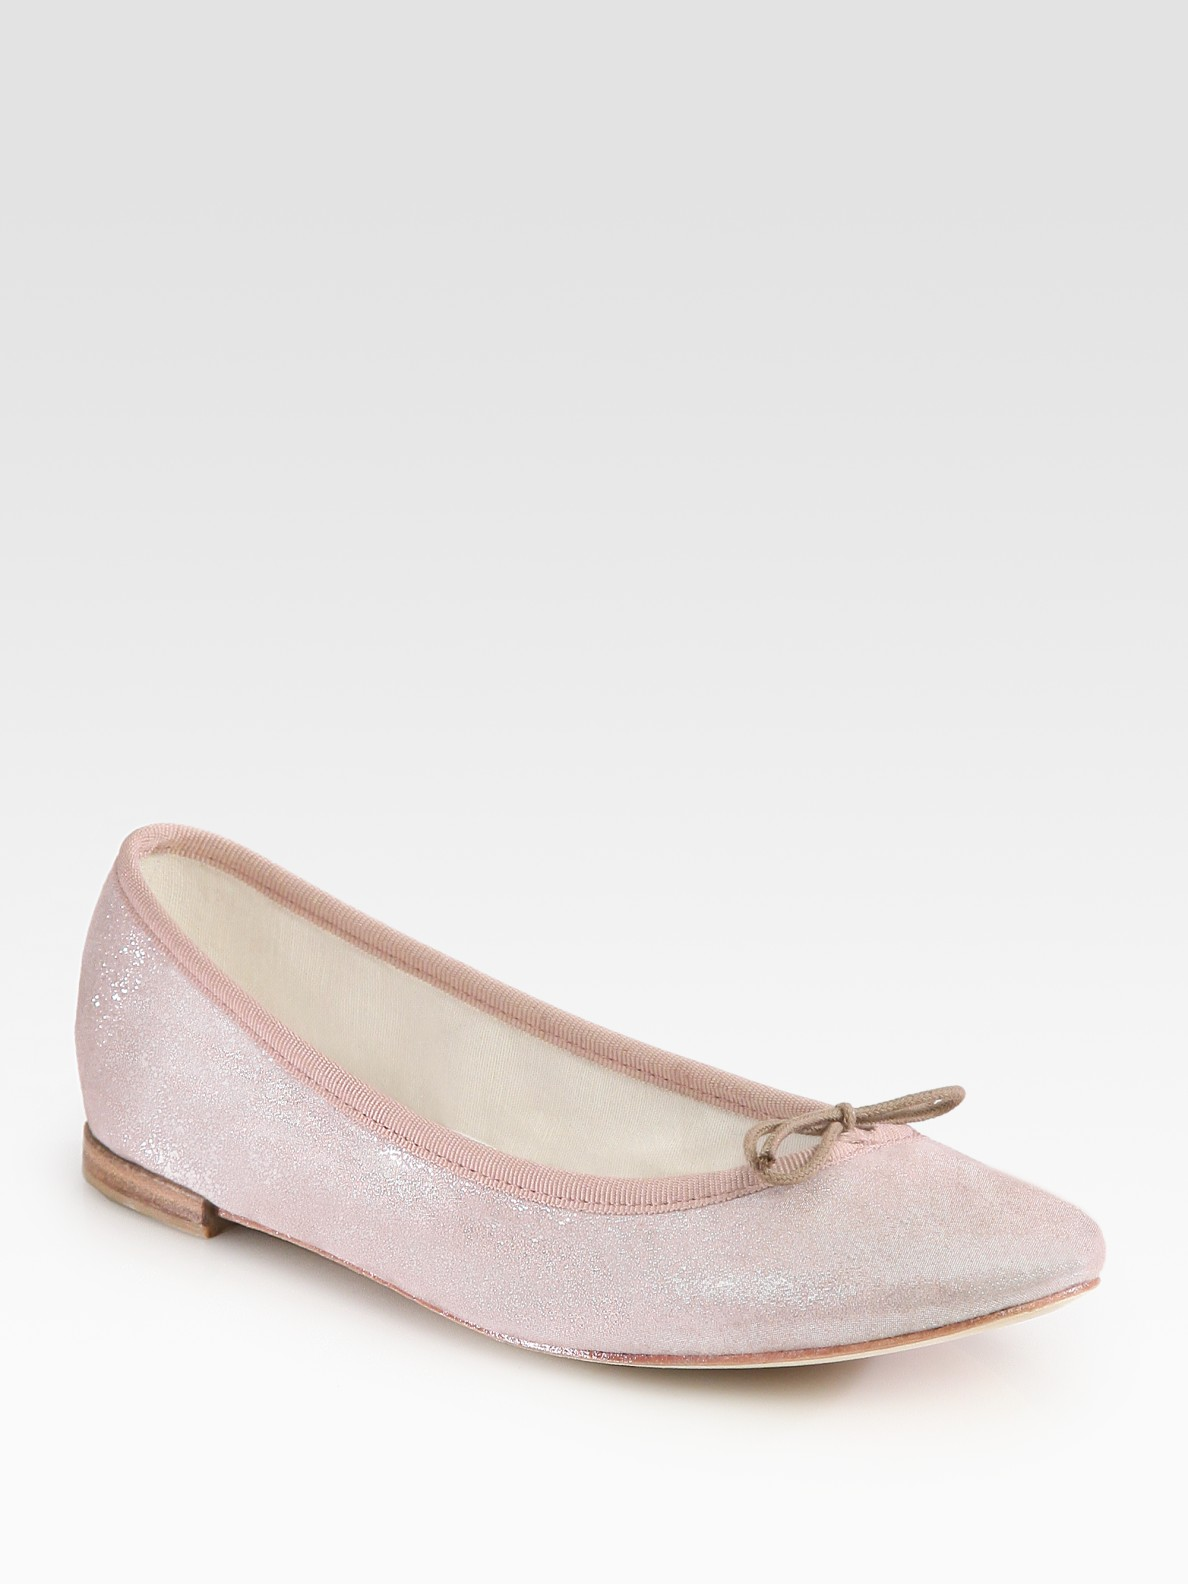 sale order Repetto Metallic Suede Flats browse cheap price Cheapest cheap online brand new unisex cheap price I7o2Vls